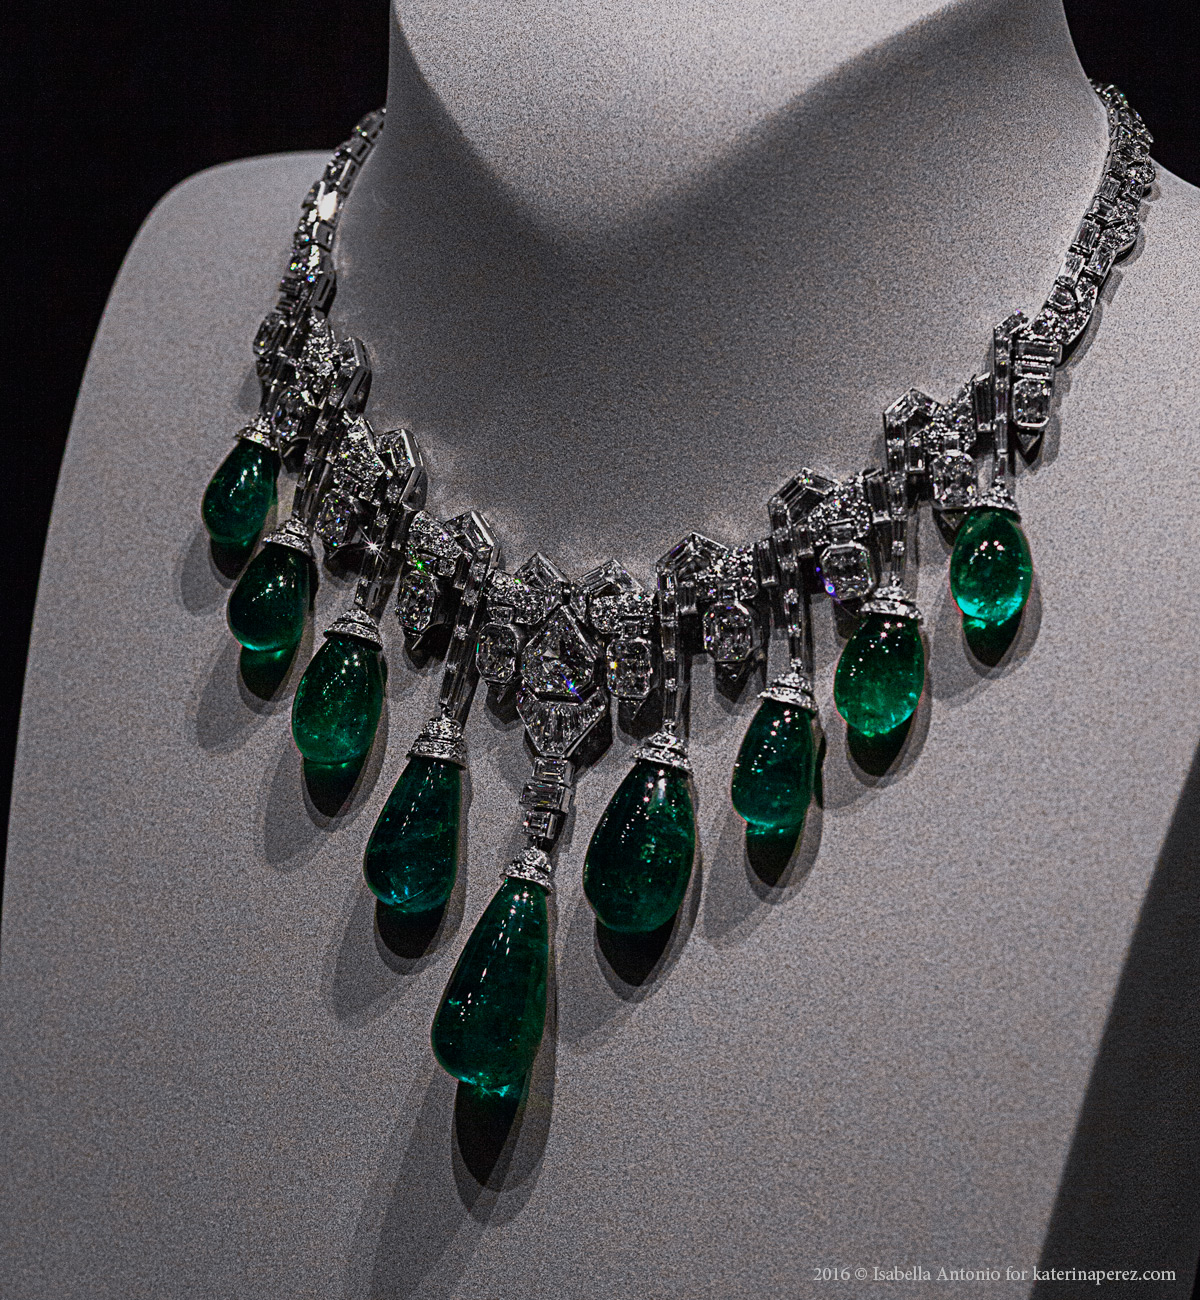 Collaret, 1929. Platinum, emeralds, diamonds. In the former collection of Princess Faiza of Egypt